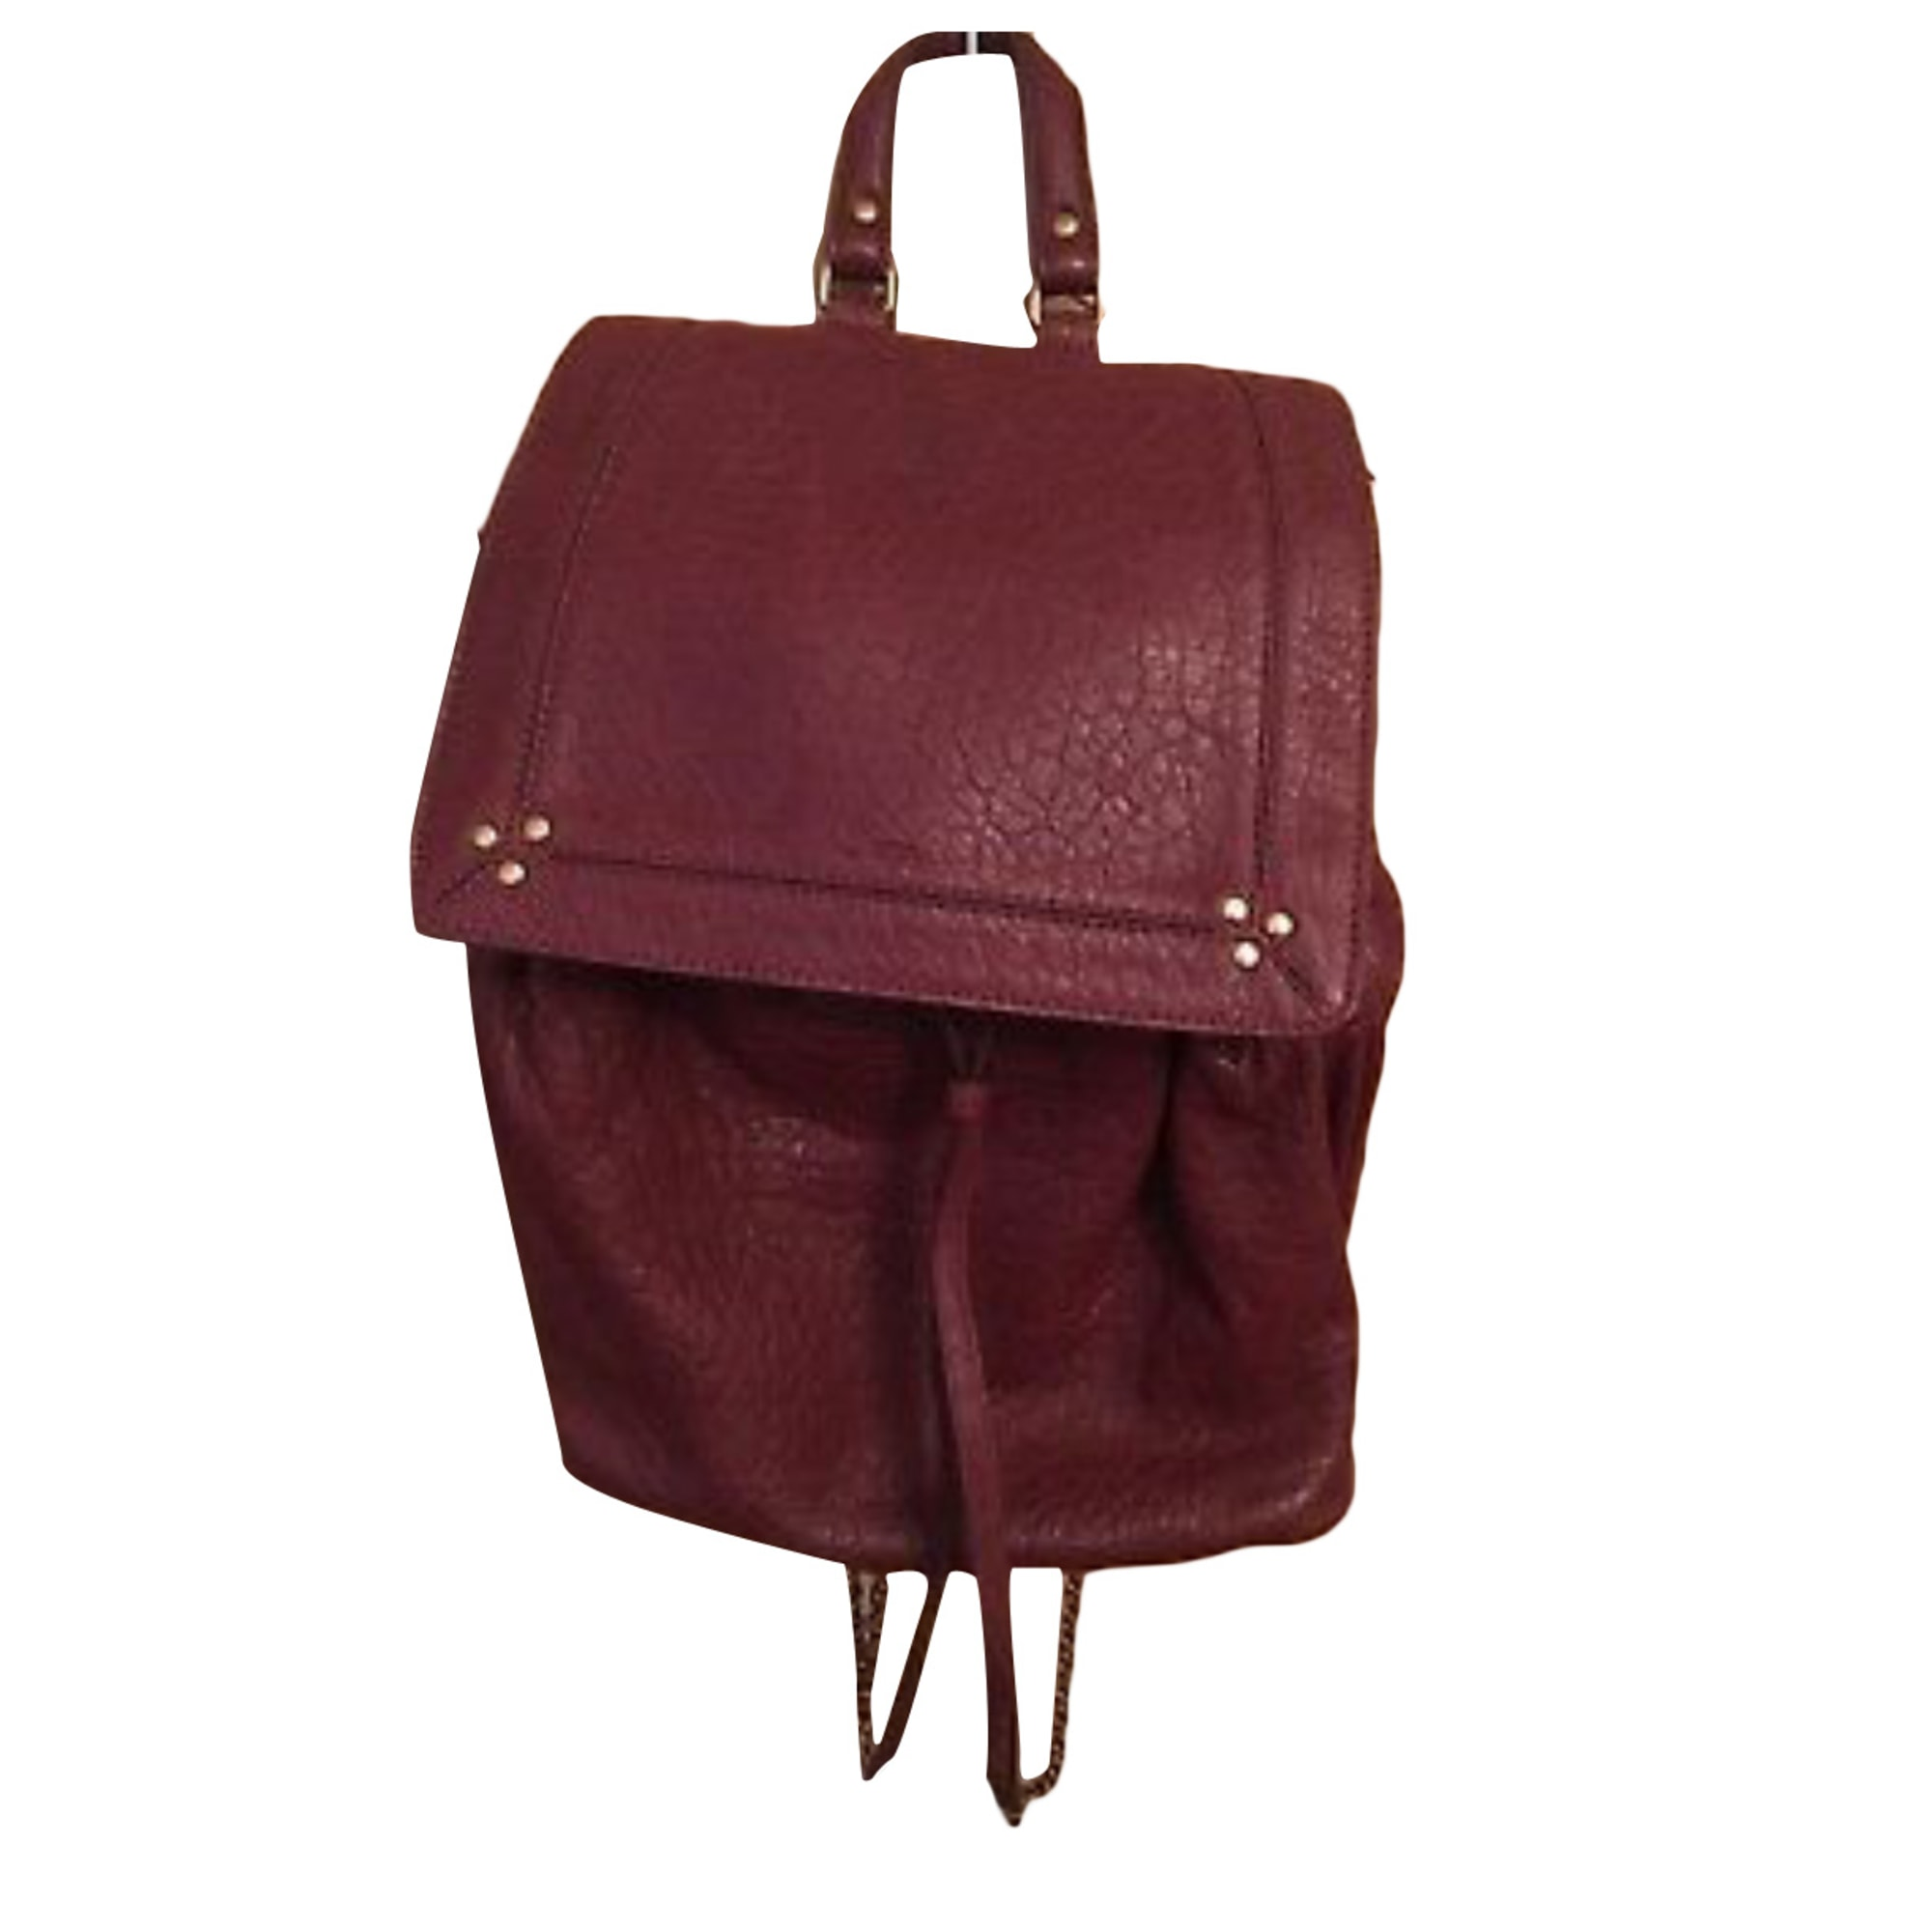 Backpack JEROME DREYFUSS Red, burgundy